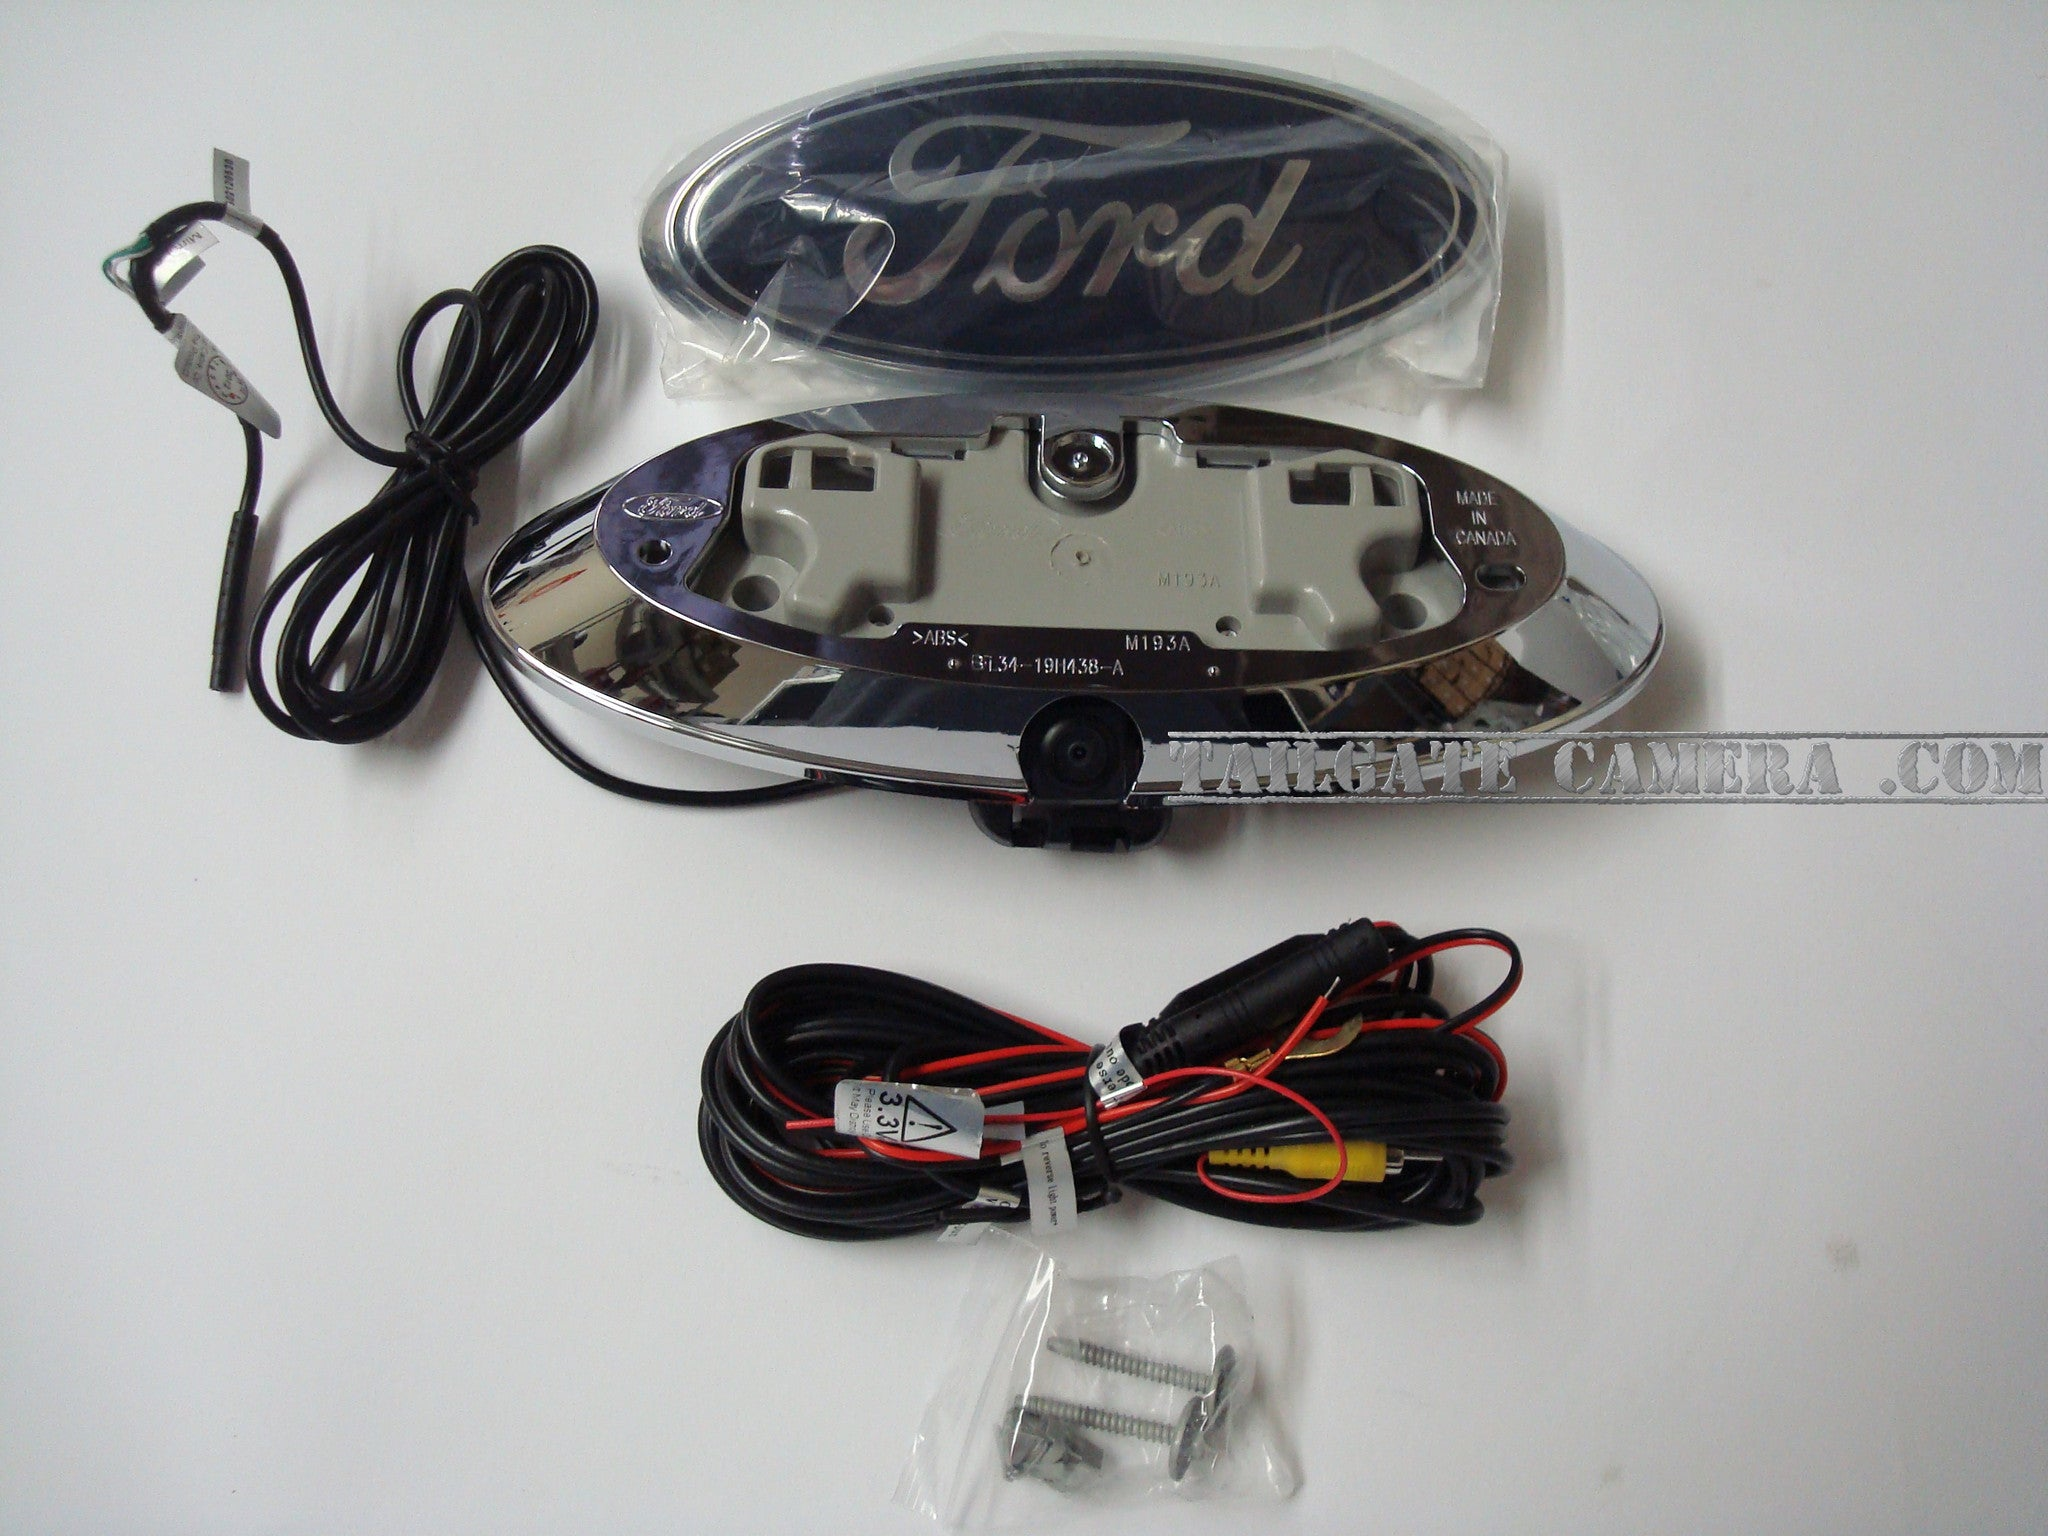 dsc1492?v=1361385570 ford,f150,tailgate,emblem,camera,ford,f250,tailgate,camera,f350 Ford F-250 Wiring Diagram at virtualis.co